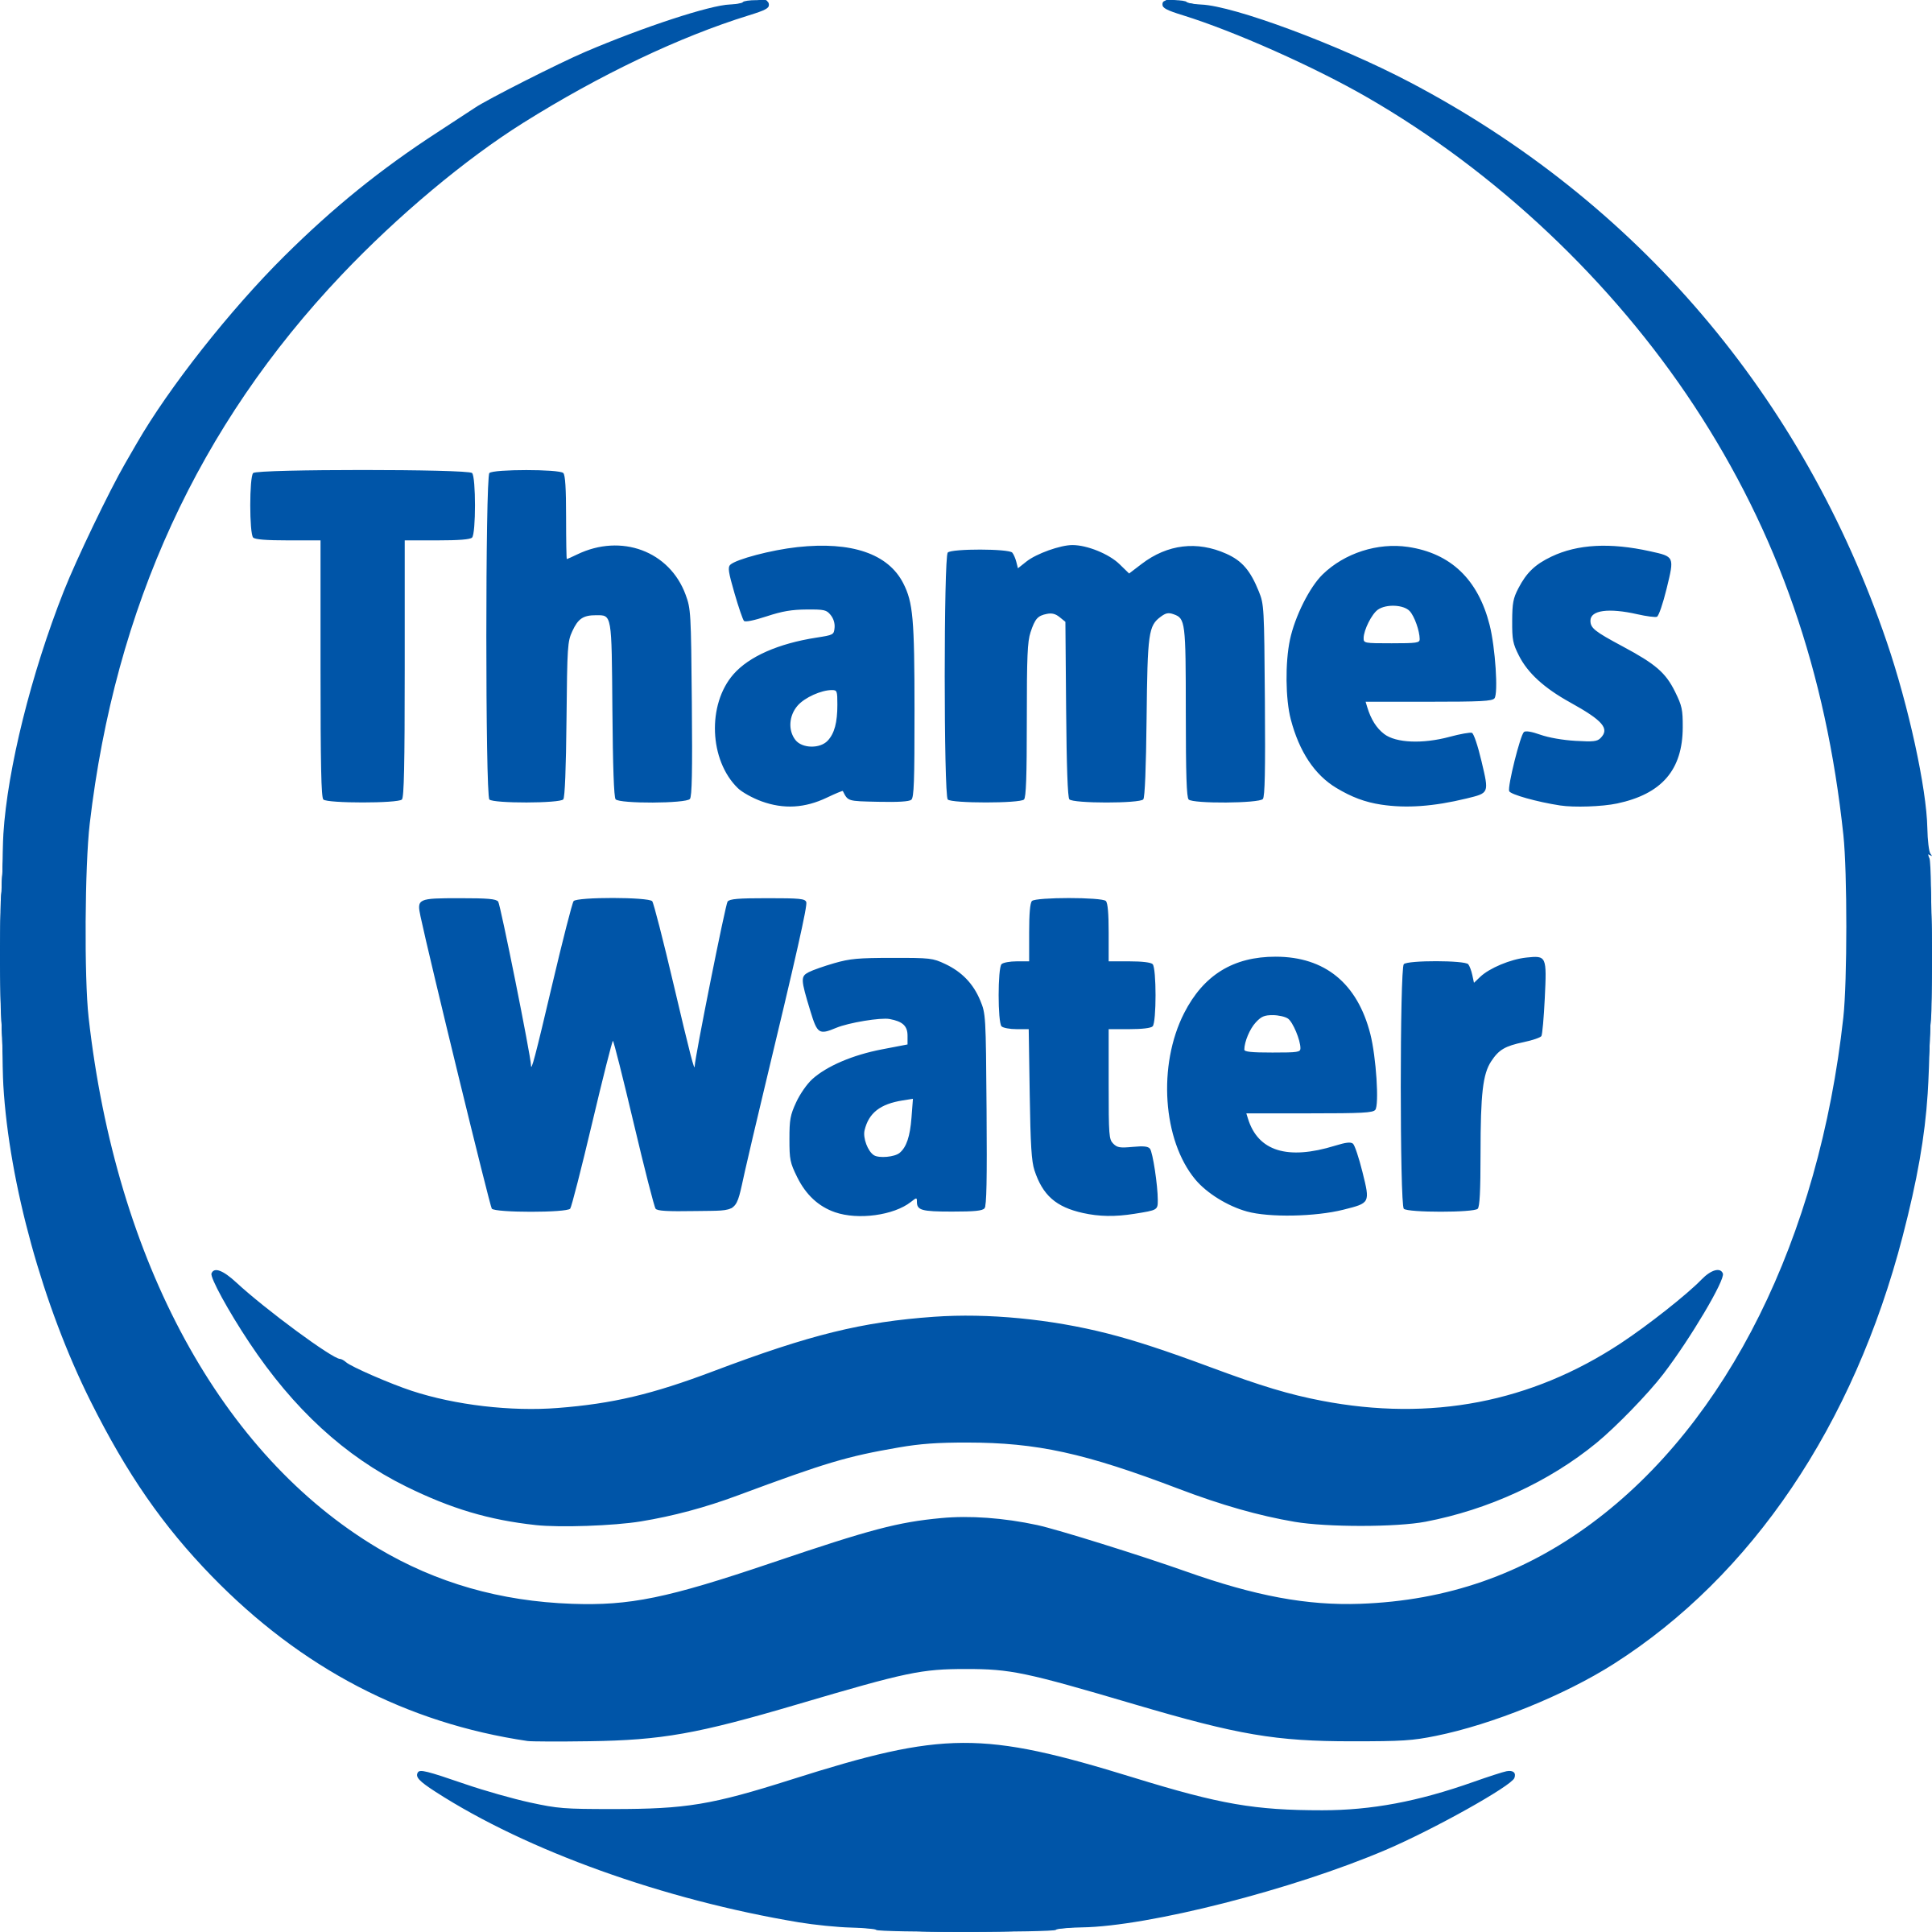 thames-water-logo-png-transparent.png